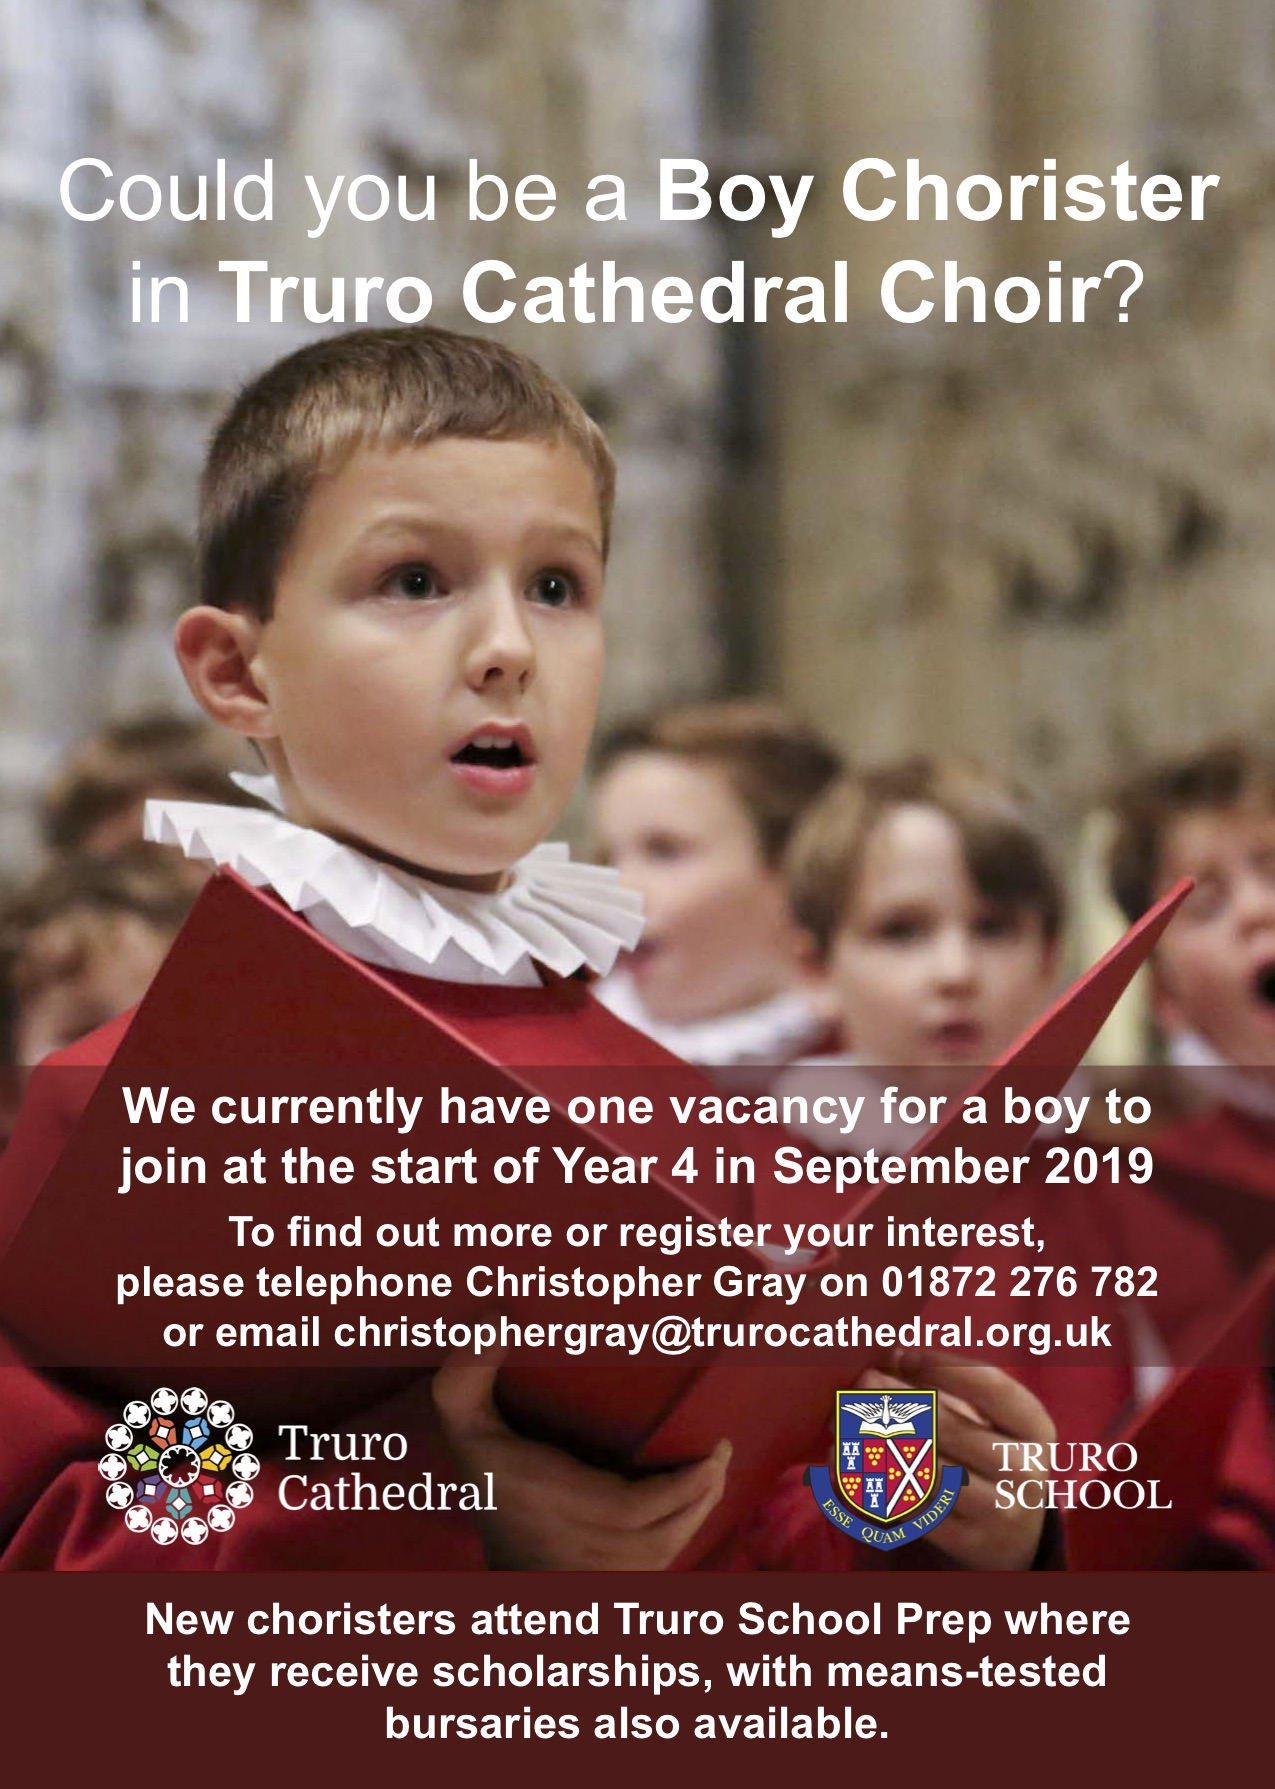 A4 Boy Chorister Advert - September 2019 Vacancy.jpg